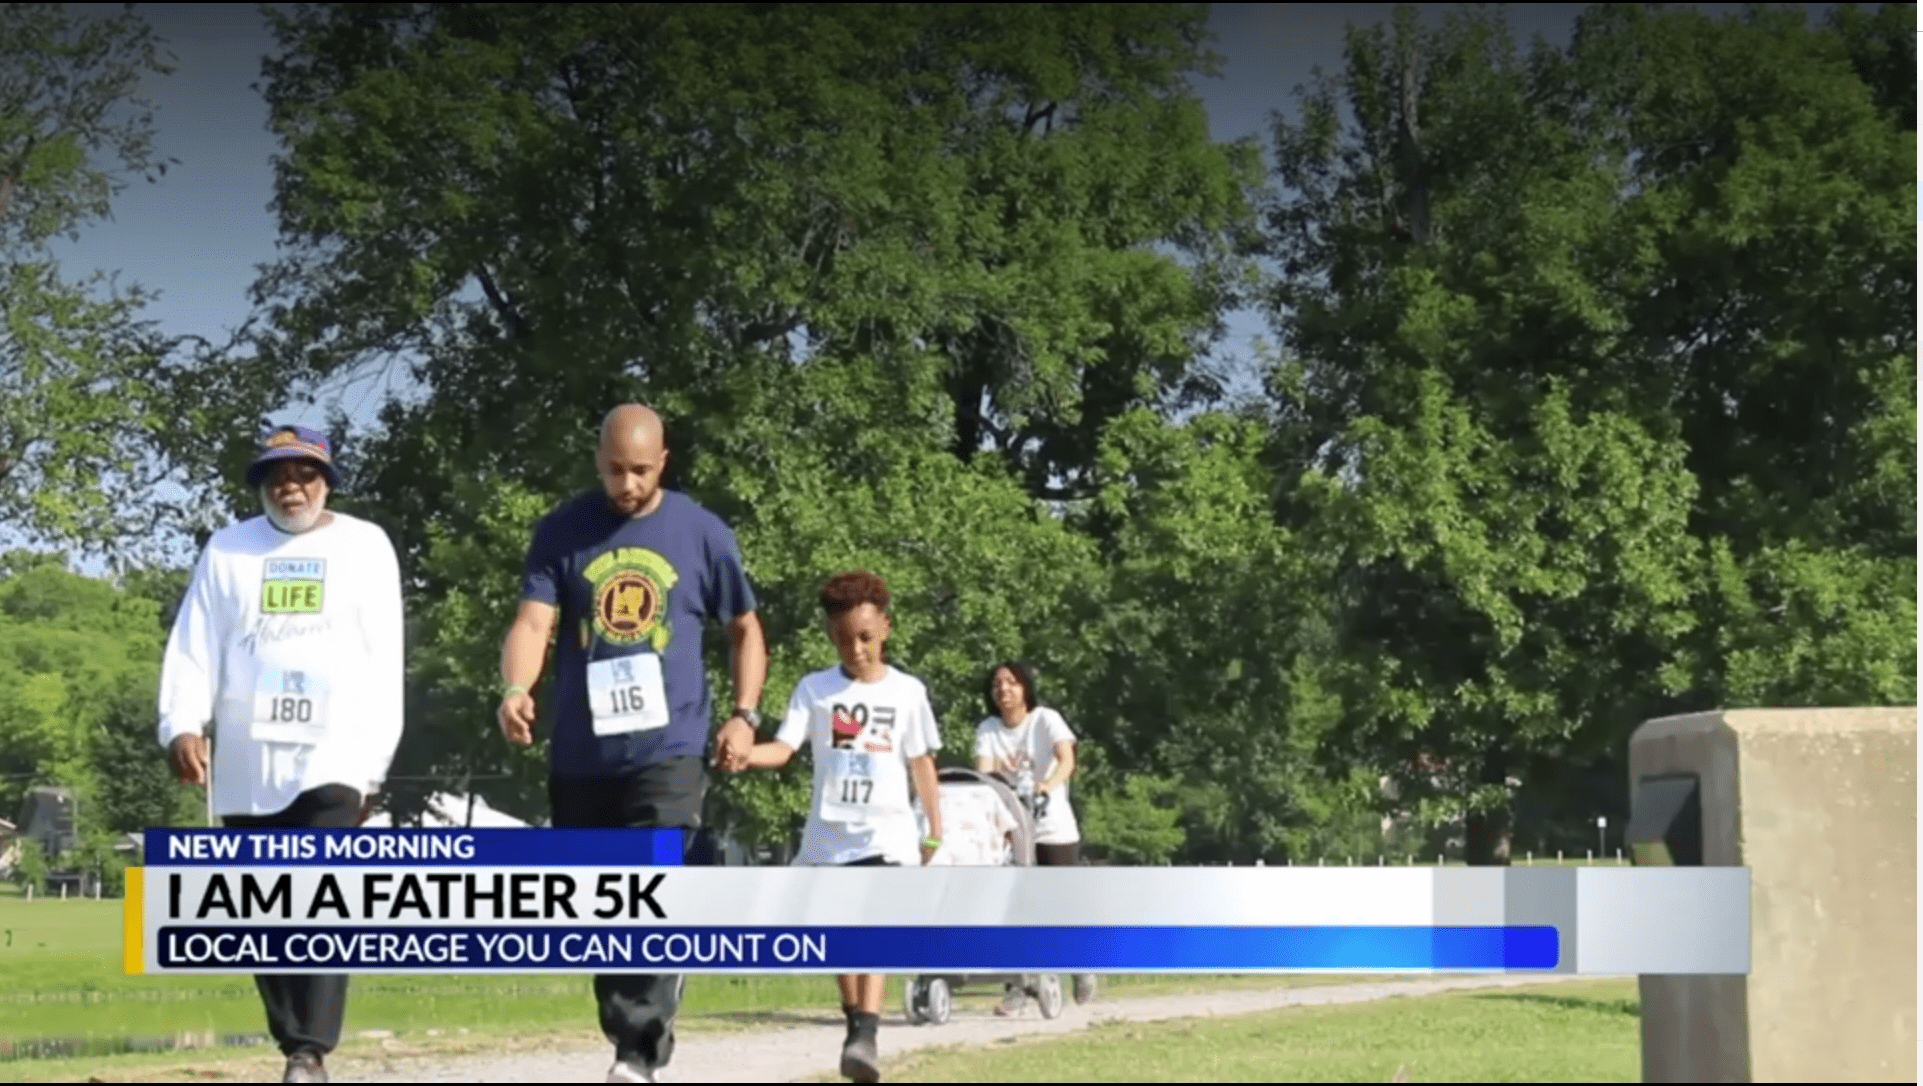 5K Working to Strengthen Families